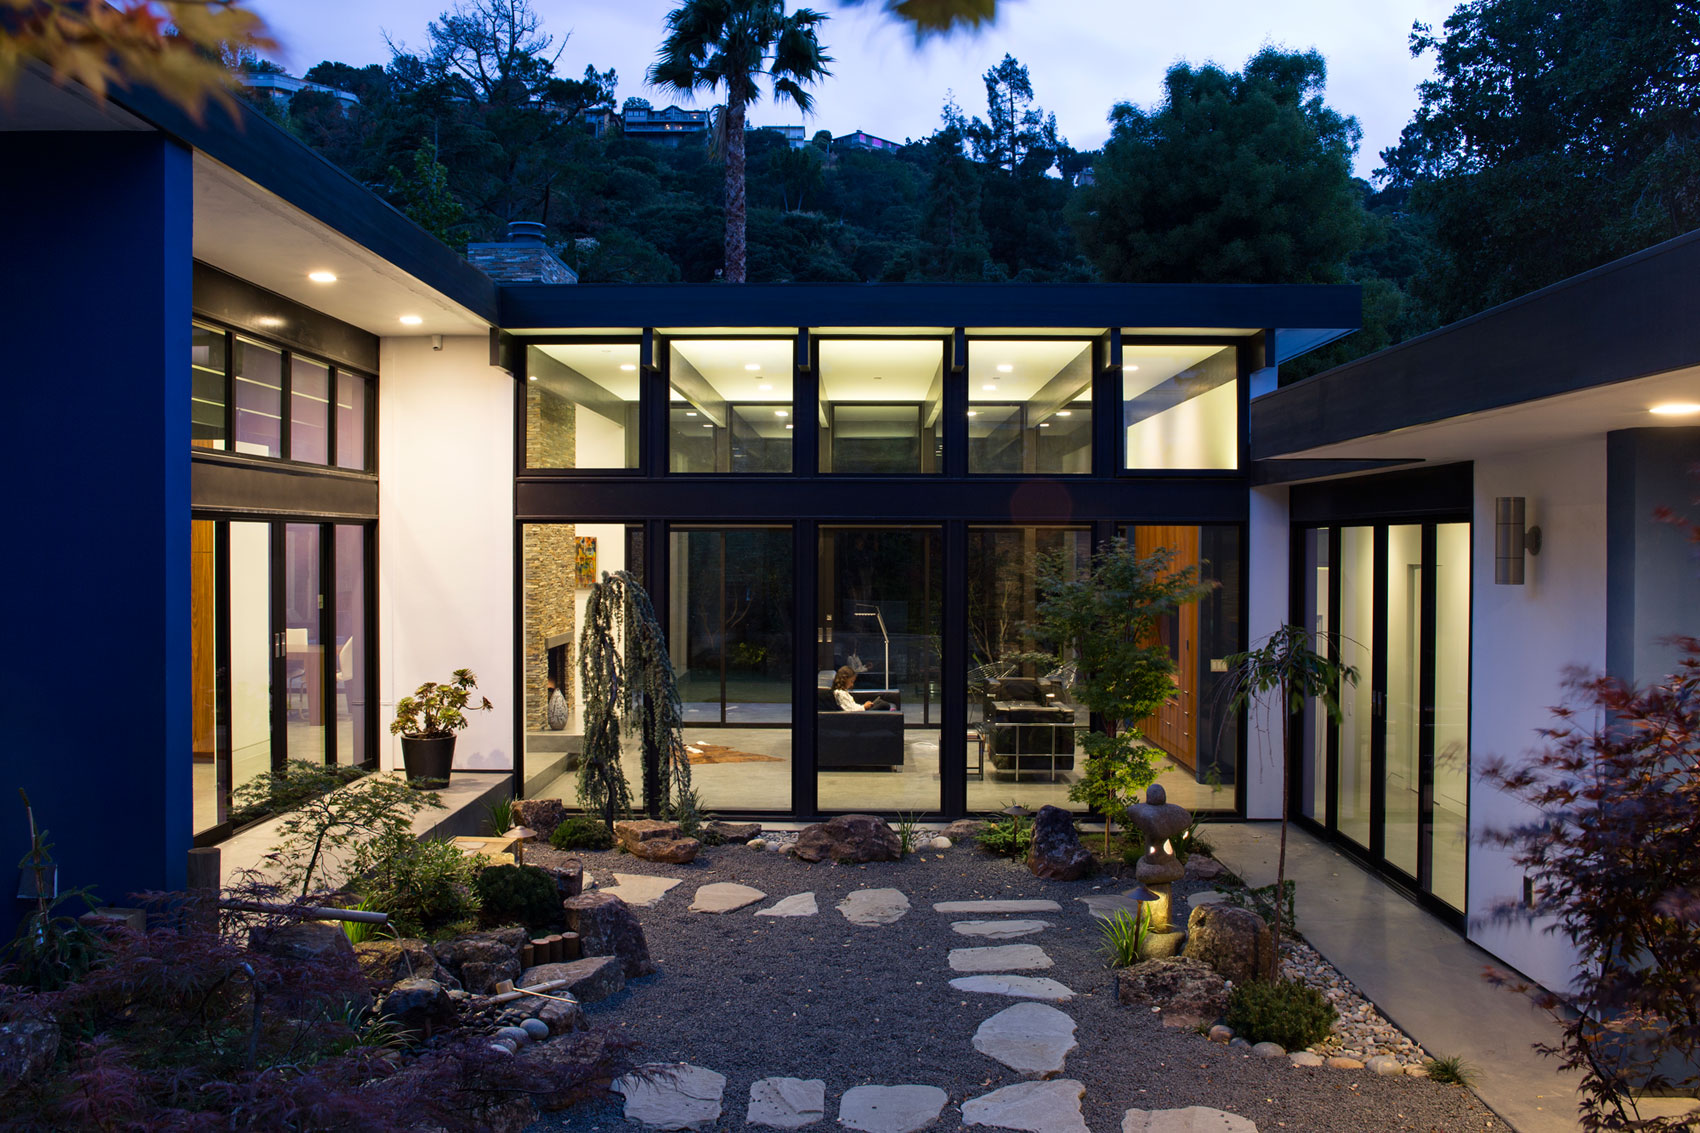 Home Design: Atrium House, A Mid-century Architecture Residence By